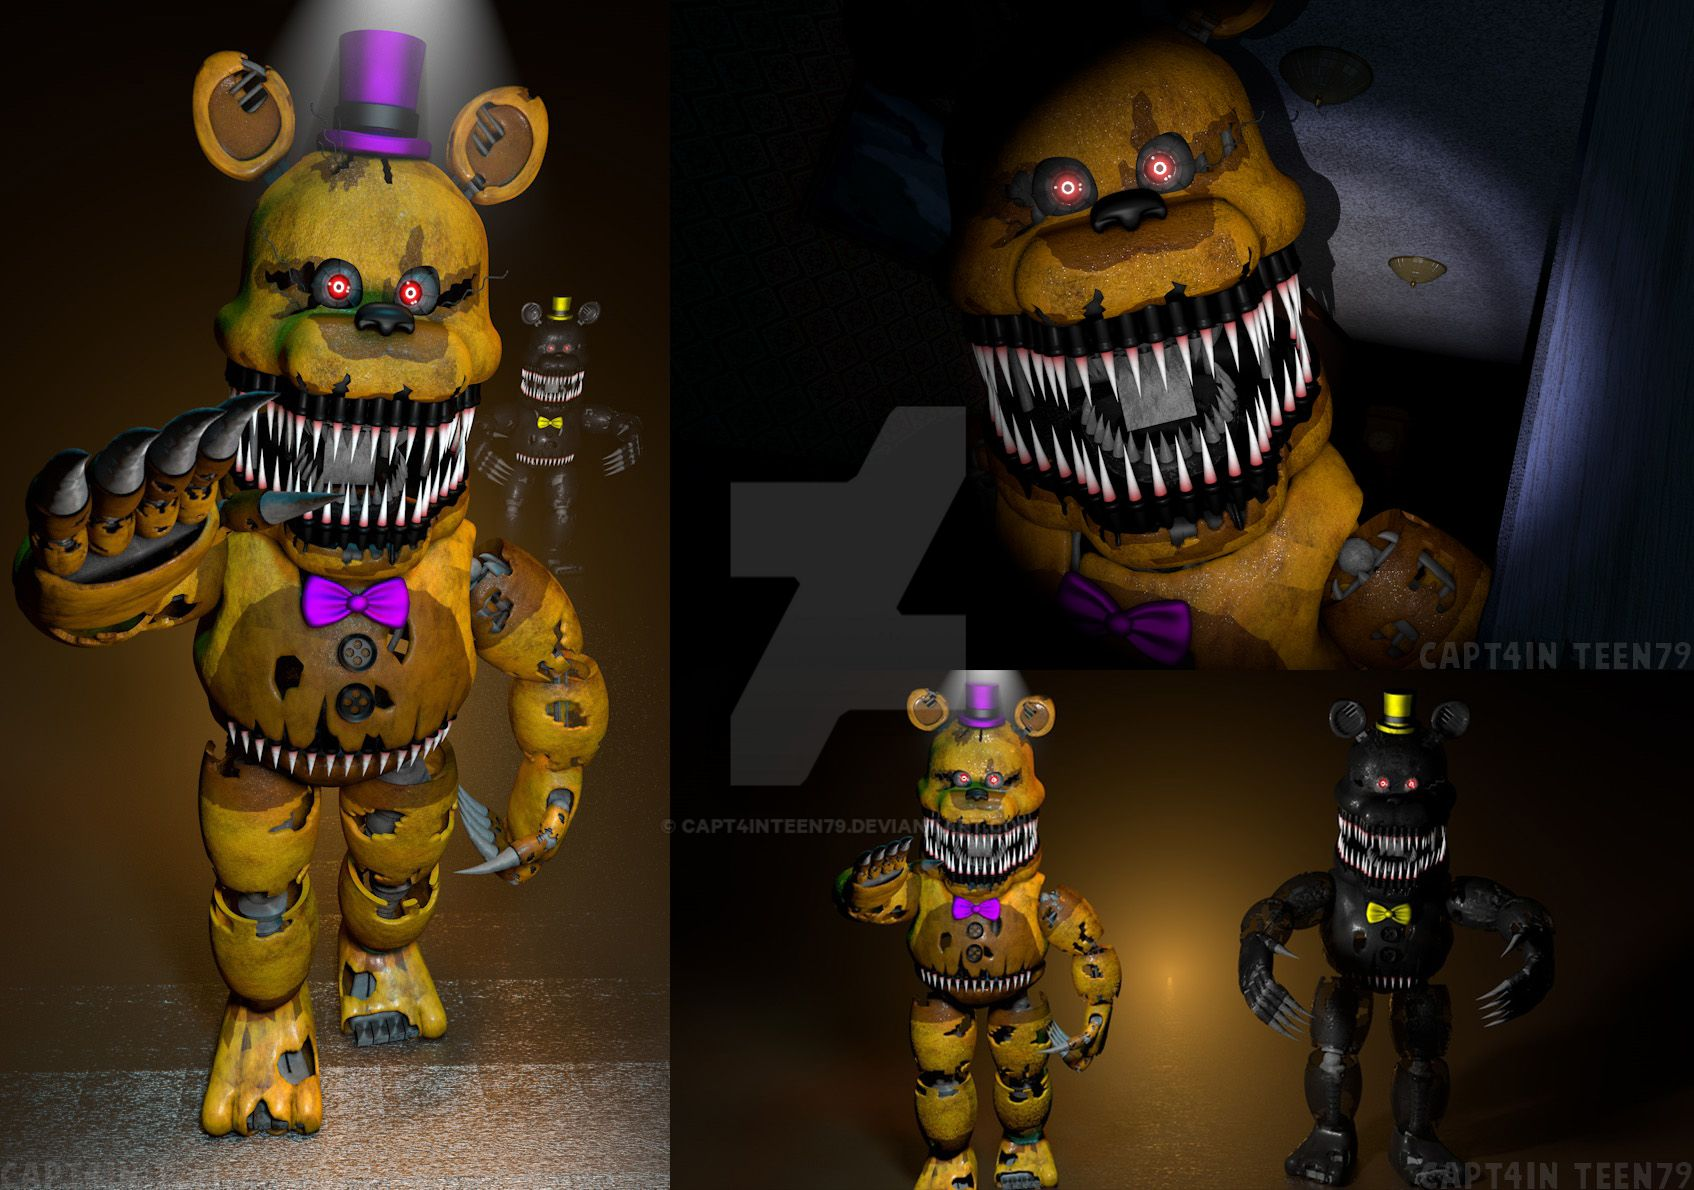 Nightmare fredbear and nightmare full body by capt4inteen79 on